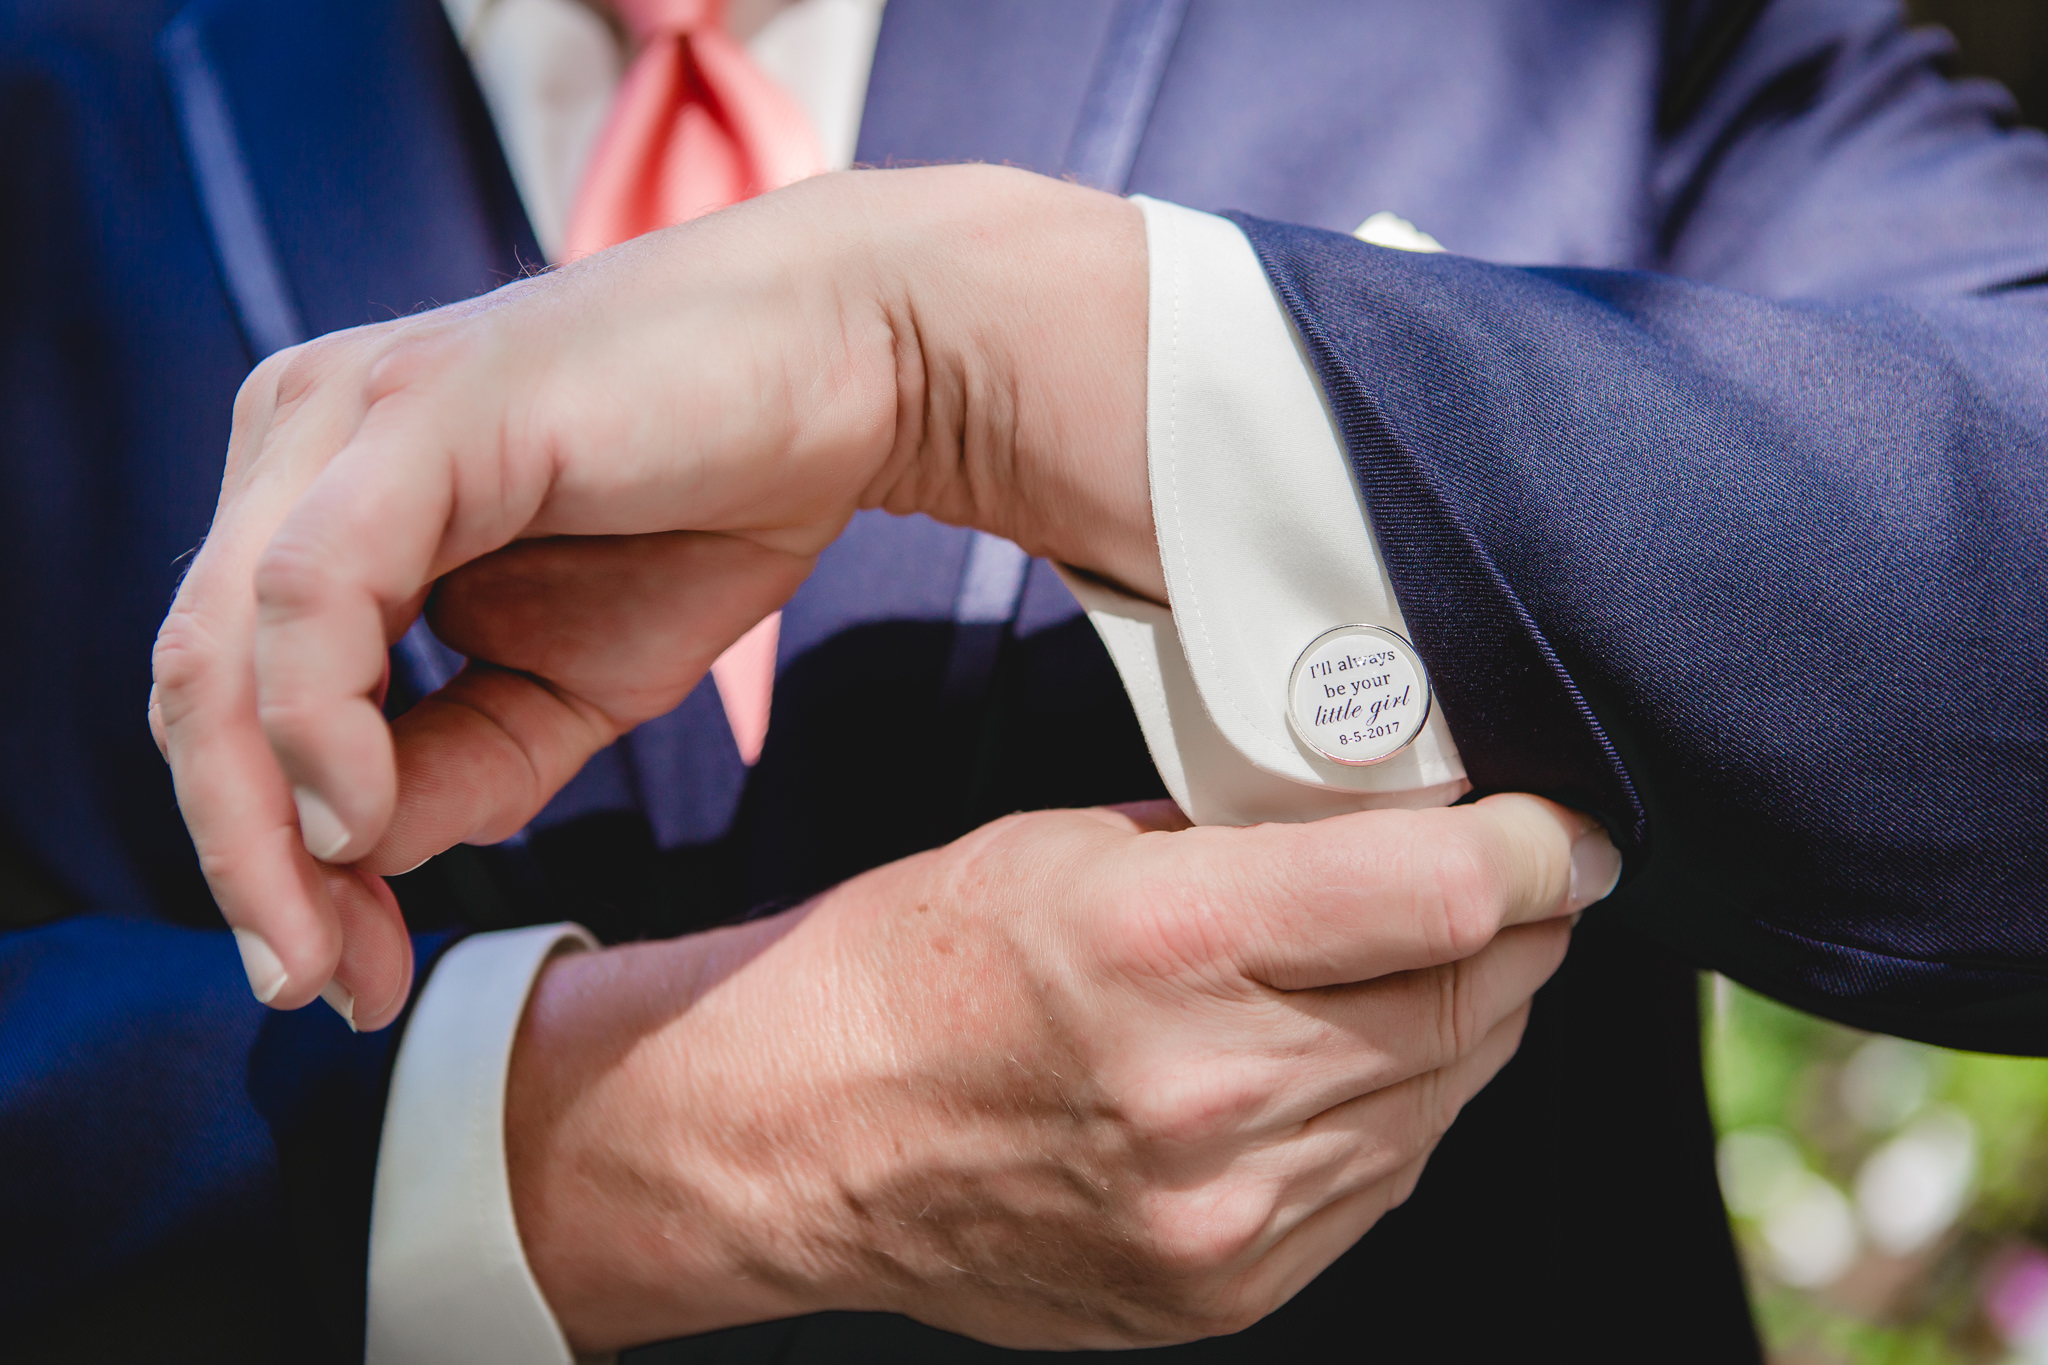 Father of the bride shows off his custom cufflinks